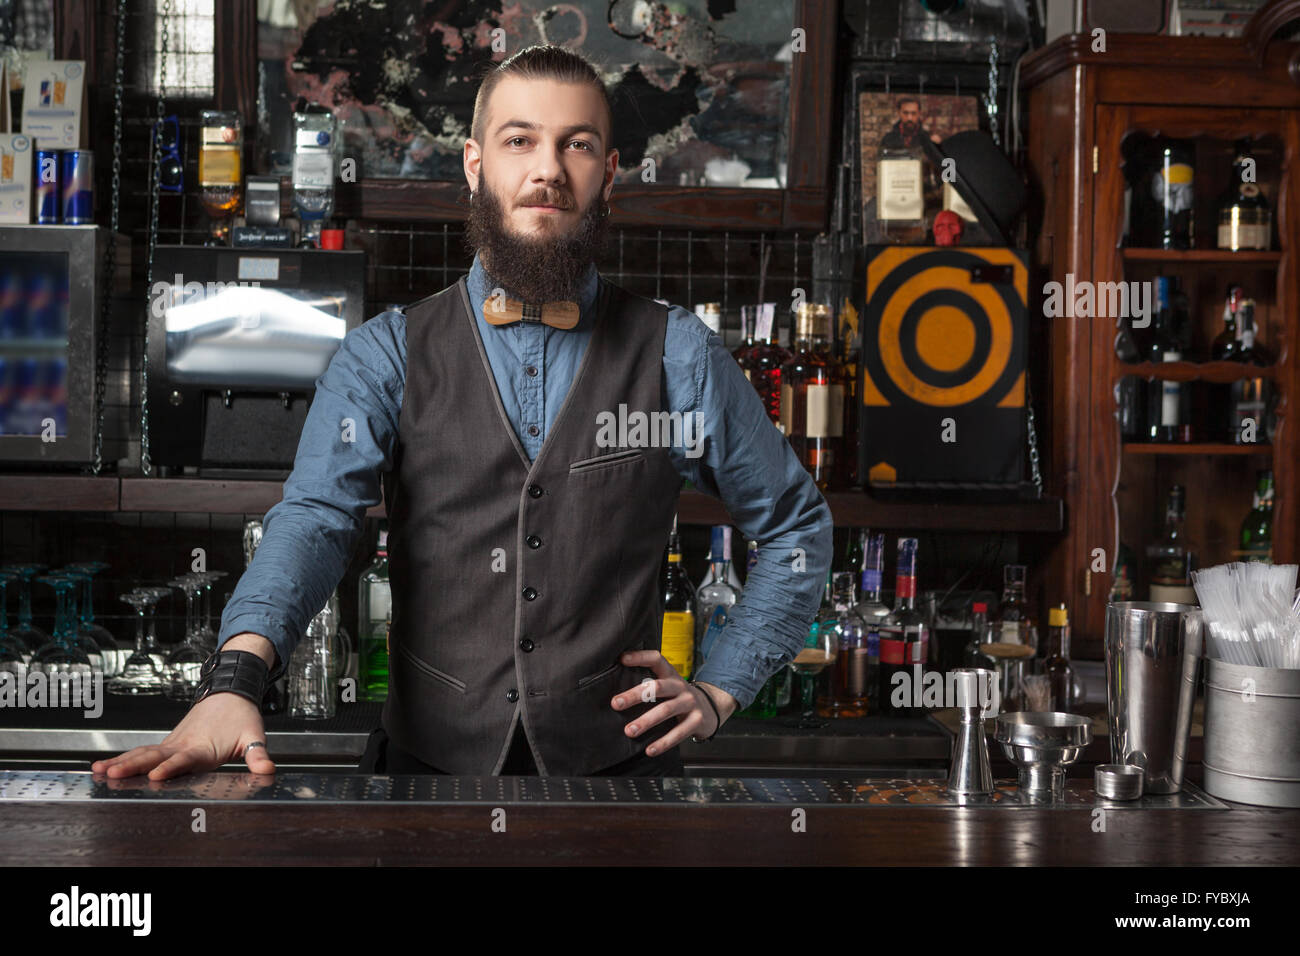 Barman at work on his workplace. - Stock Image